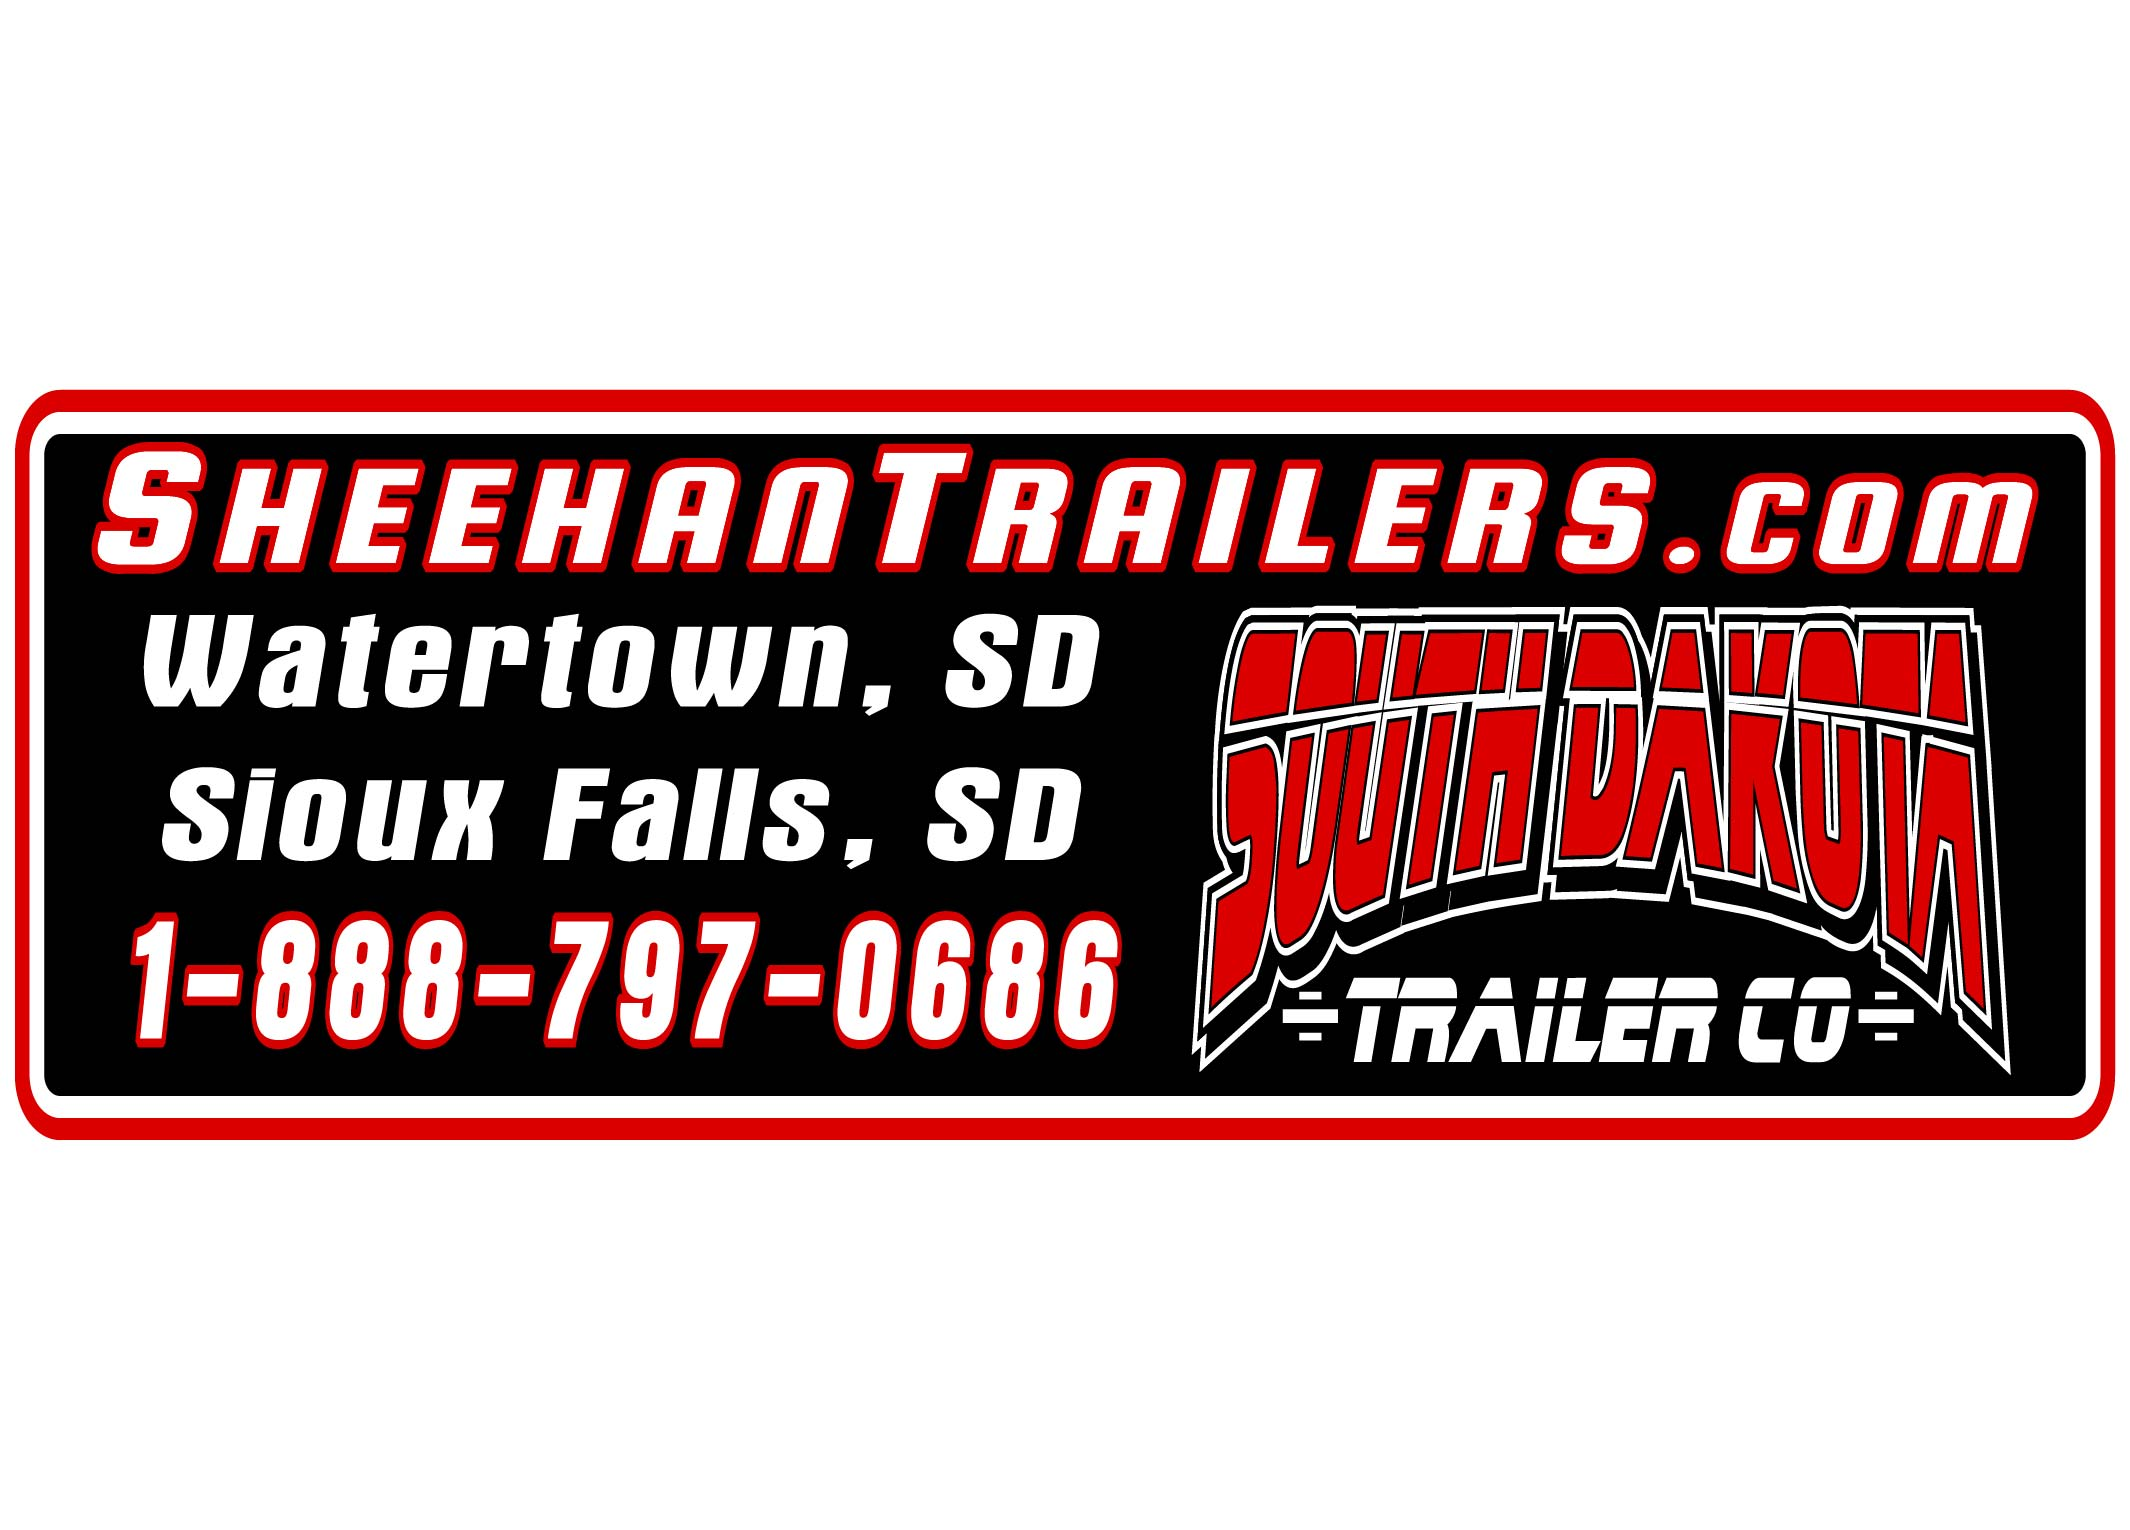 Sheehan Trailers-01.jpg